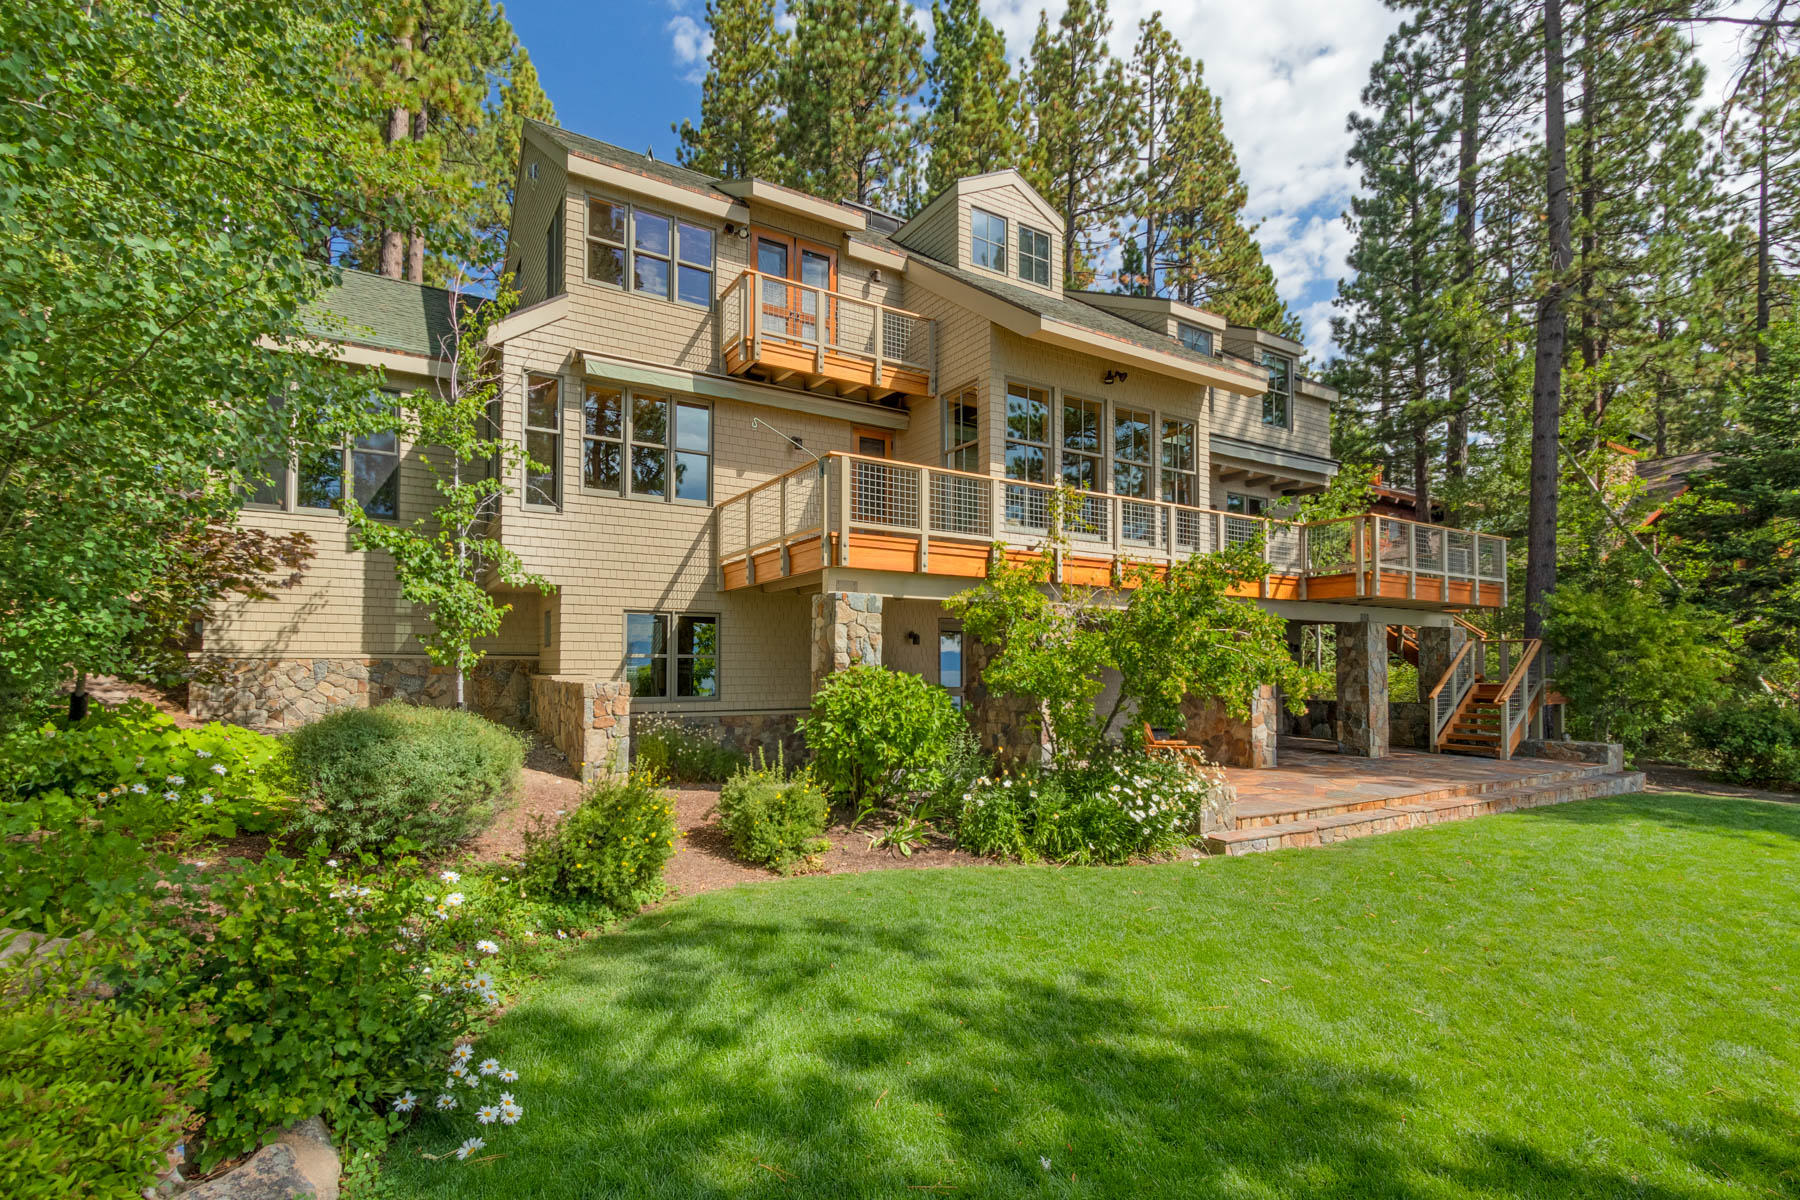 Single Family Homes for Active at 2200 North Lake Blvd., Tahoe City, CA 2200 North Lake Blvd. Tahoe City, California 96145 United States